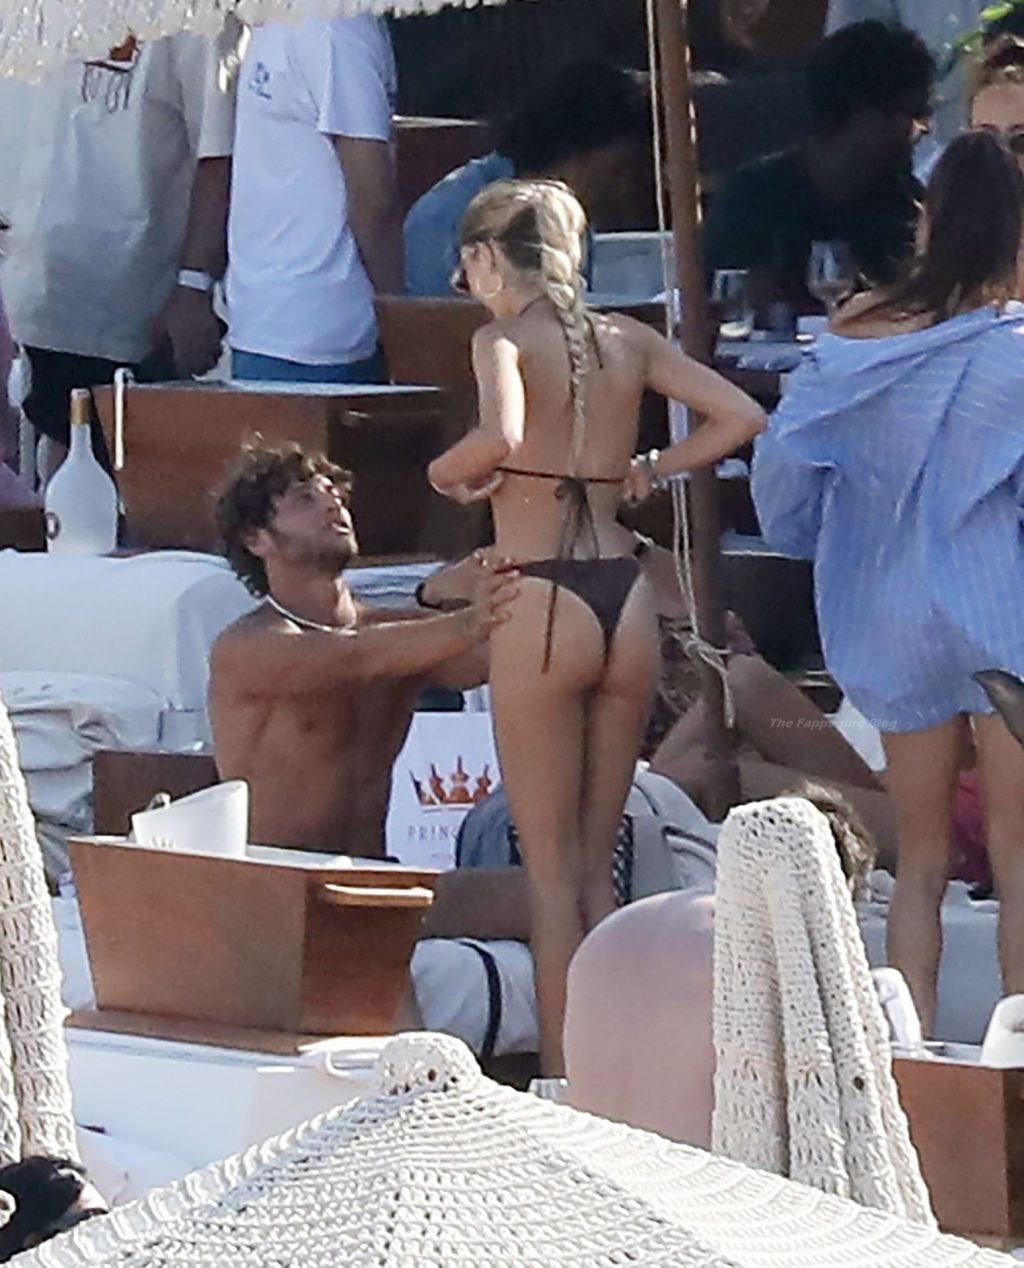 Delilah Belle Hamlin is Pictured with Eyal Booker Relaxing at the Beach in Mykonos (75 Photos)